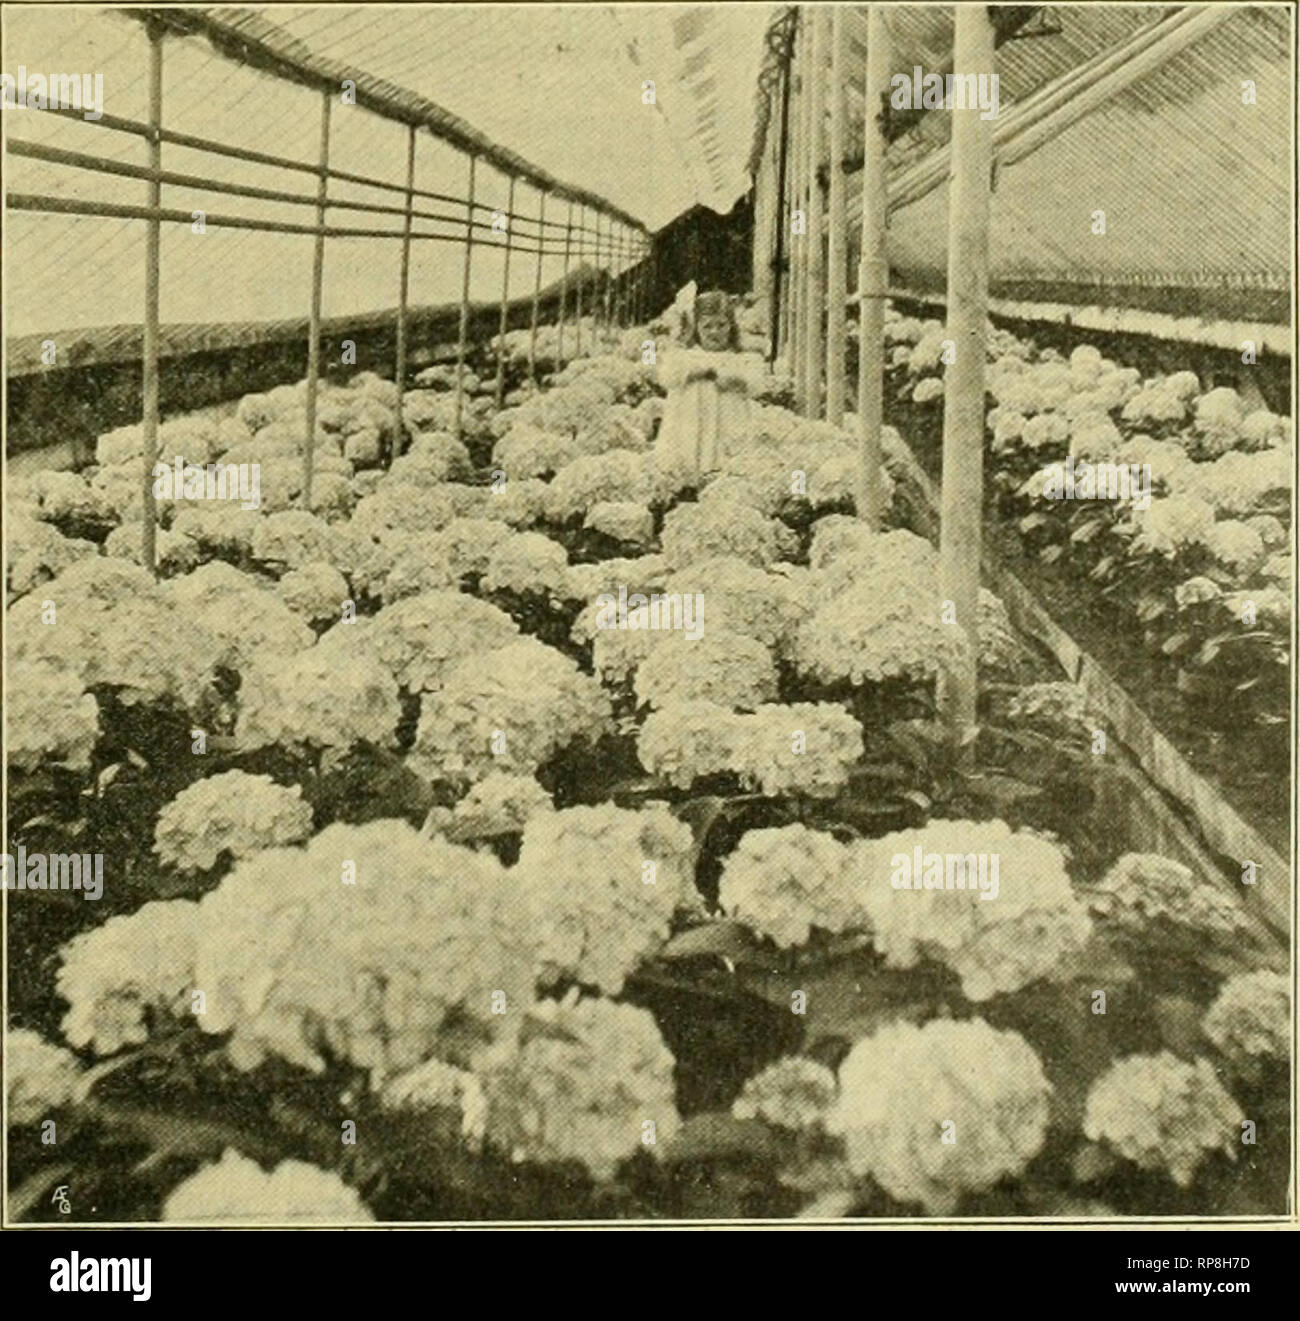 """. The American florist : a weekly journal for the trade. Floriculture; Florists. igog. The American Florist. 119 ^^^^^^^^^^^^^^^BVv '^/^^^^H ^^^H ^^^??V^s ^t^^ ^^P^^^^^^^^^^H ^^^^^^^^^^^^^^^P^^^Bf p^*^ ^S^fe^^^^^^^^l ^^^^^^^^^^^^^Hta> '^^^^^^Kur""""' ^^^^^^^^^^^H ^^^V Jf i^ -^ ^^^^^M^^^HkL^ ^'. ^?y^R' ^^T^^^^Kf •*^y'::.1^ l^^^^^^^l ^^^^^^^ a^^^^^H^kI^^ J^^^^^^^K^T ' ^^^B^fe^^klKil^^^^^^l ^"""" '-? '^^'^^?'^Pip^ > drUUHBi^F!!^^! H^ AjFV^^*m^K ii« -? -mfy^y^^^^B r W^--^m. ''i:-^ ^^ ^hi'iiV^ ' ' ' Vfek 1^ ?^SH [^^^^jik^'>.j.X ^^Kk."""" ii^uJH j I^H ^^Bi^^^^^^H^^^^^I' ^^^